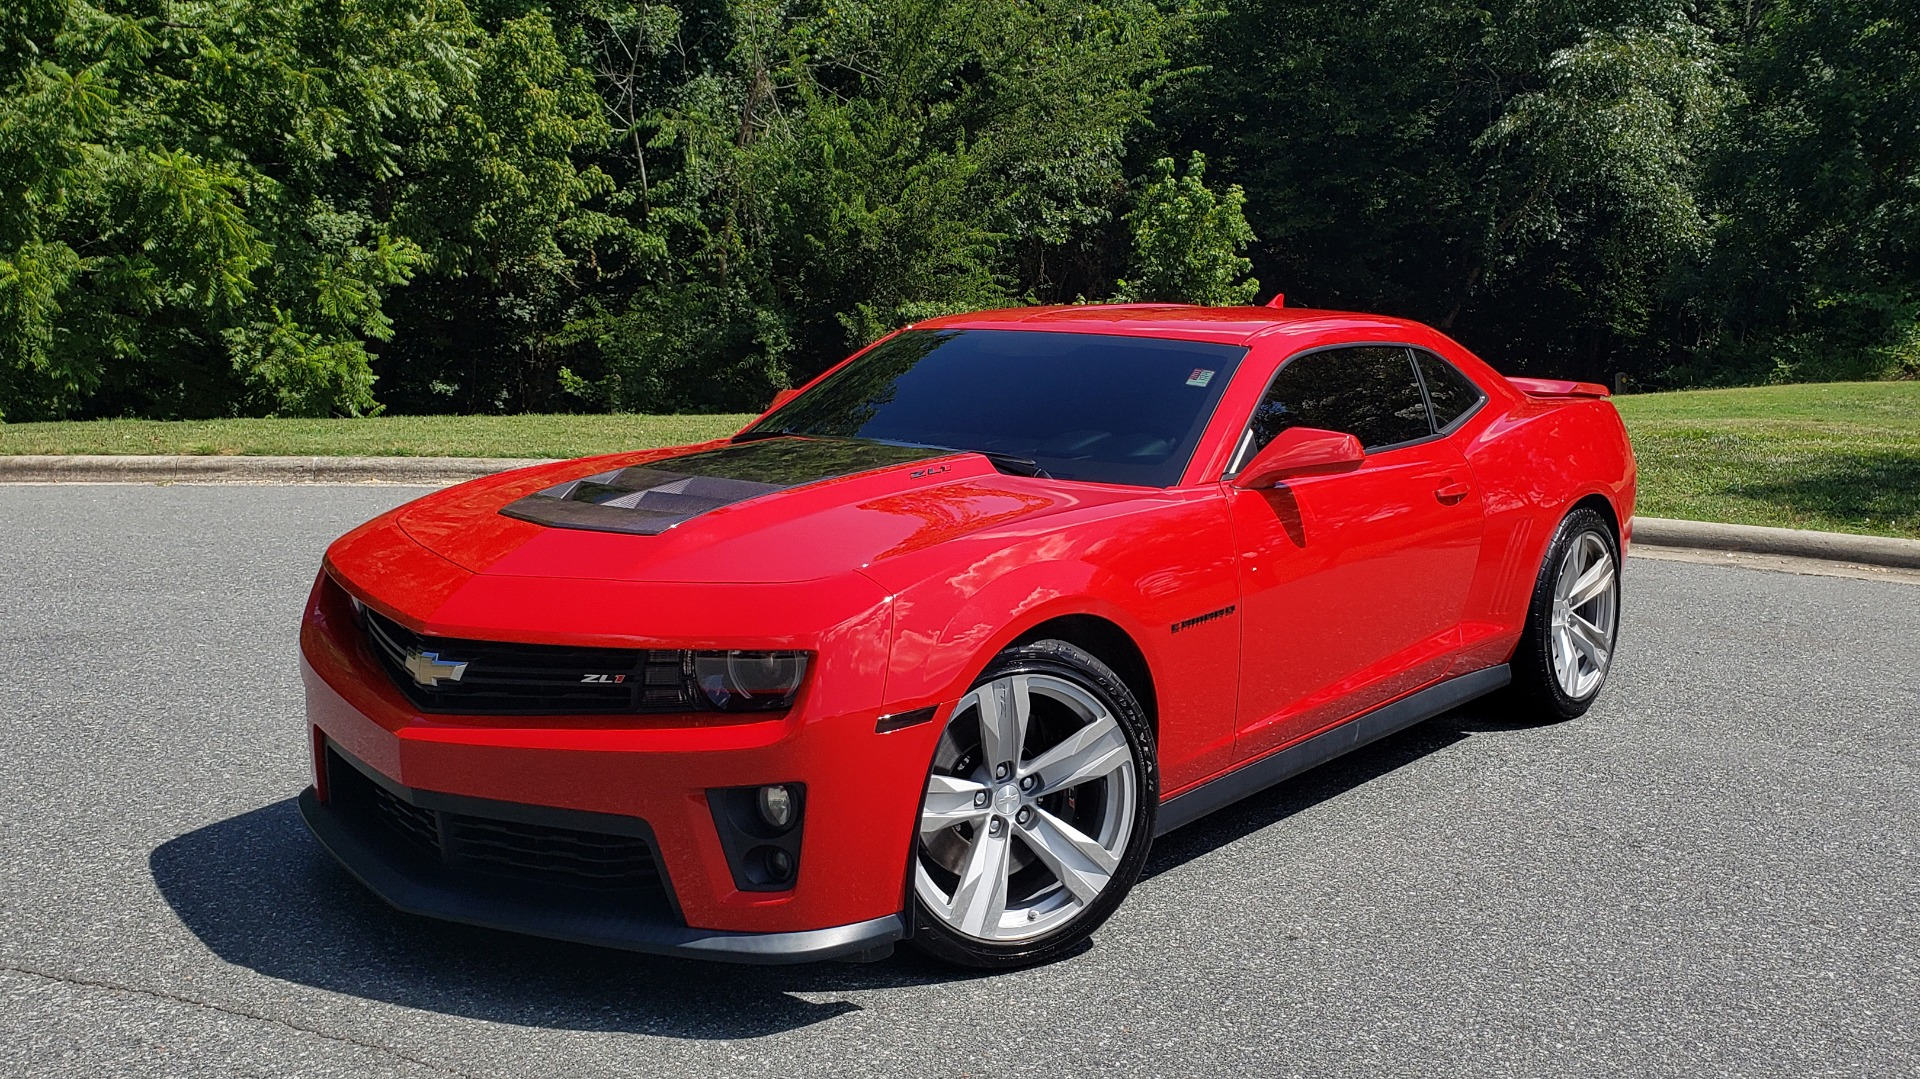 Used 2013 Chevrolet CAMARO ZL1 580HP / AUTO / NAV / BOSTON ACOUSTIC SND / REARVIEW for sale $40,995 at Formula Imports in Charlotte NC 28227 1